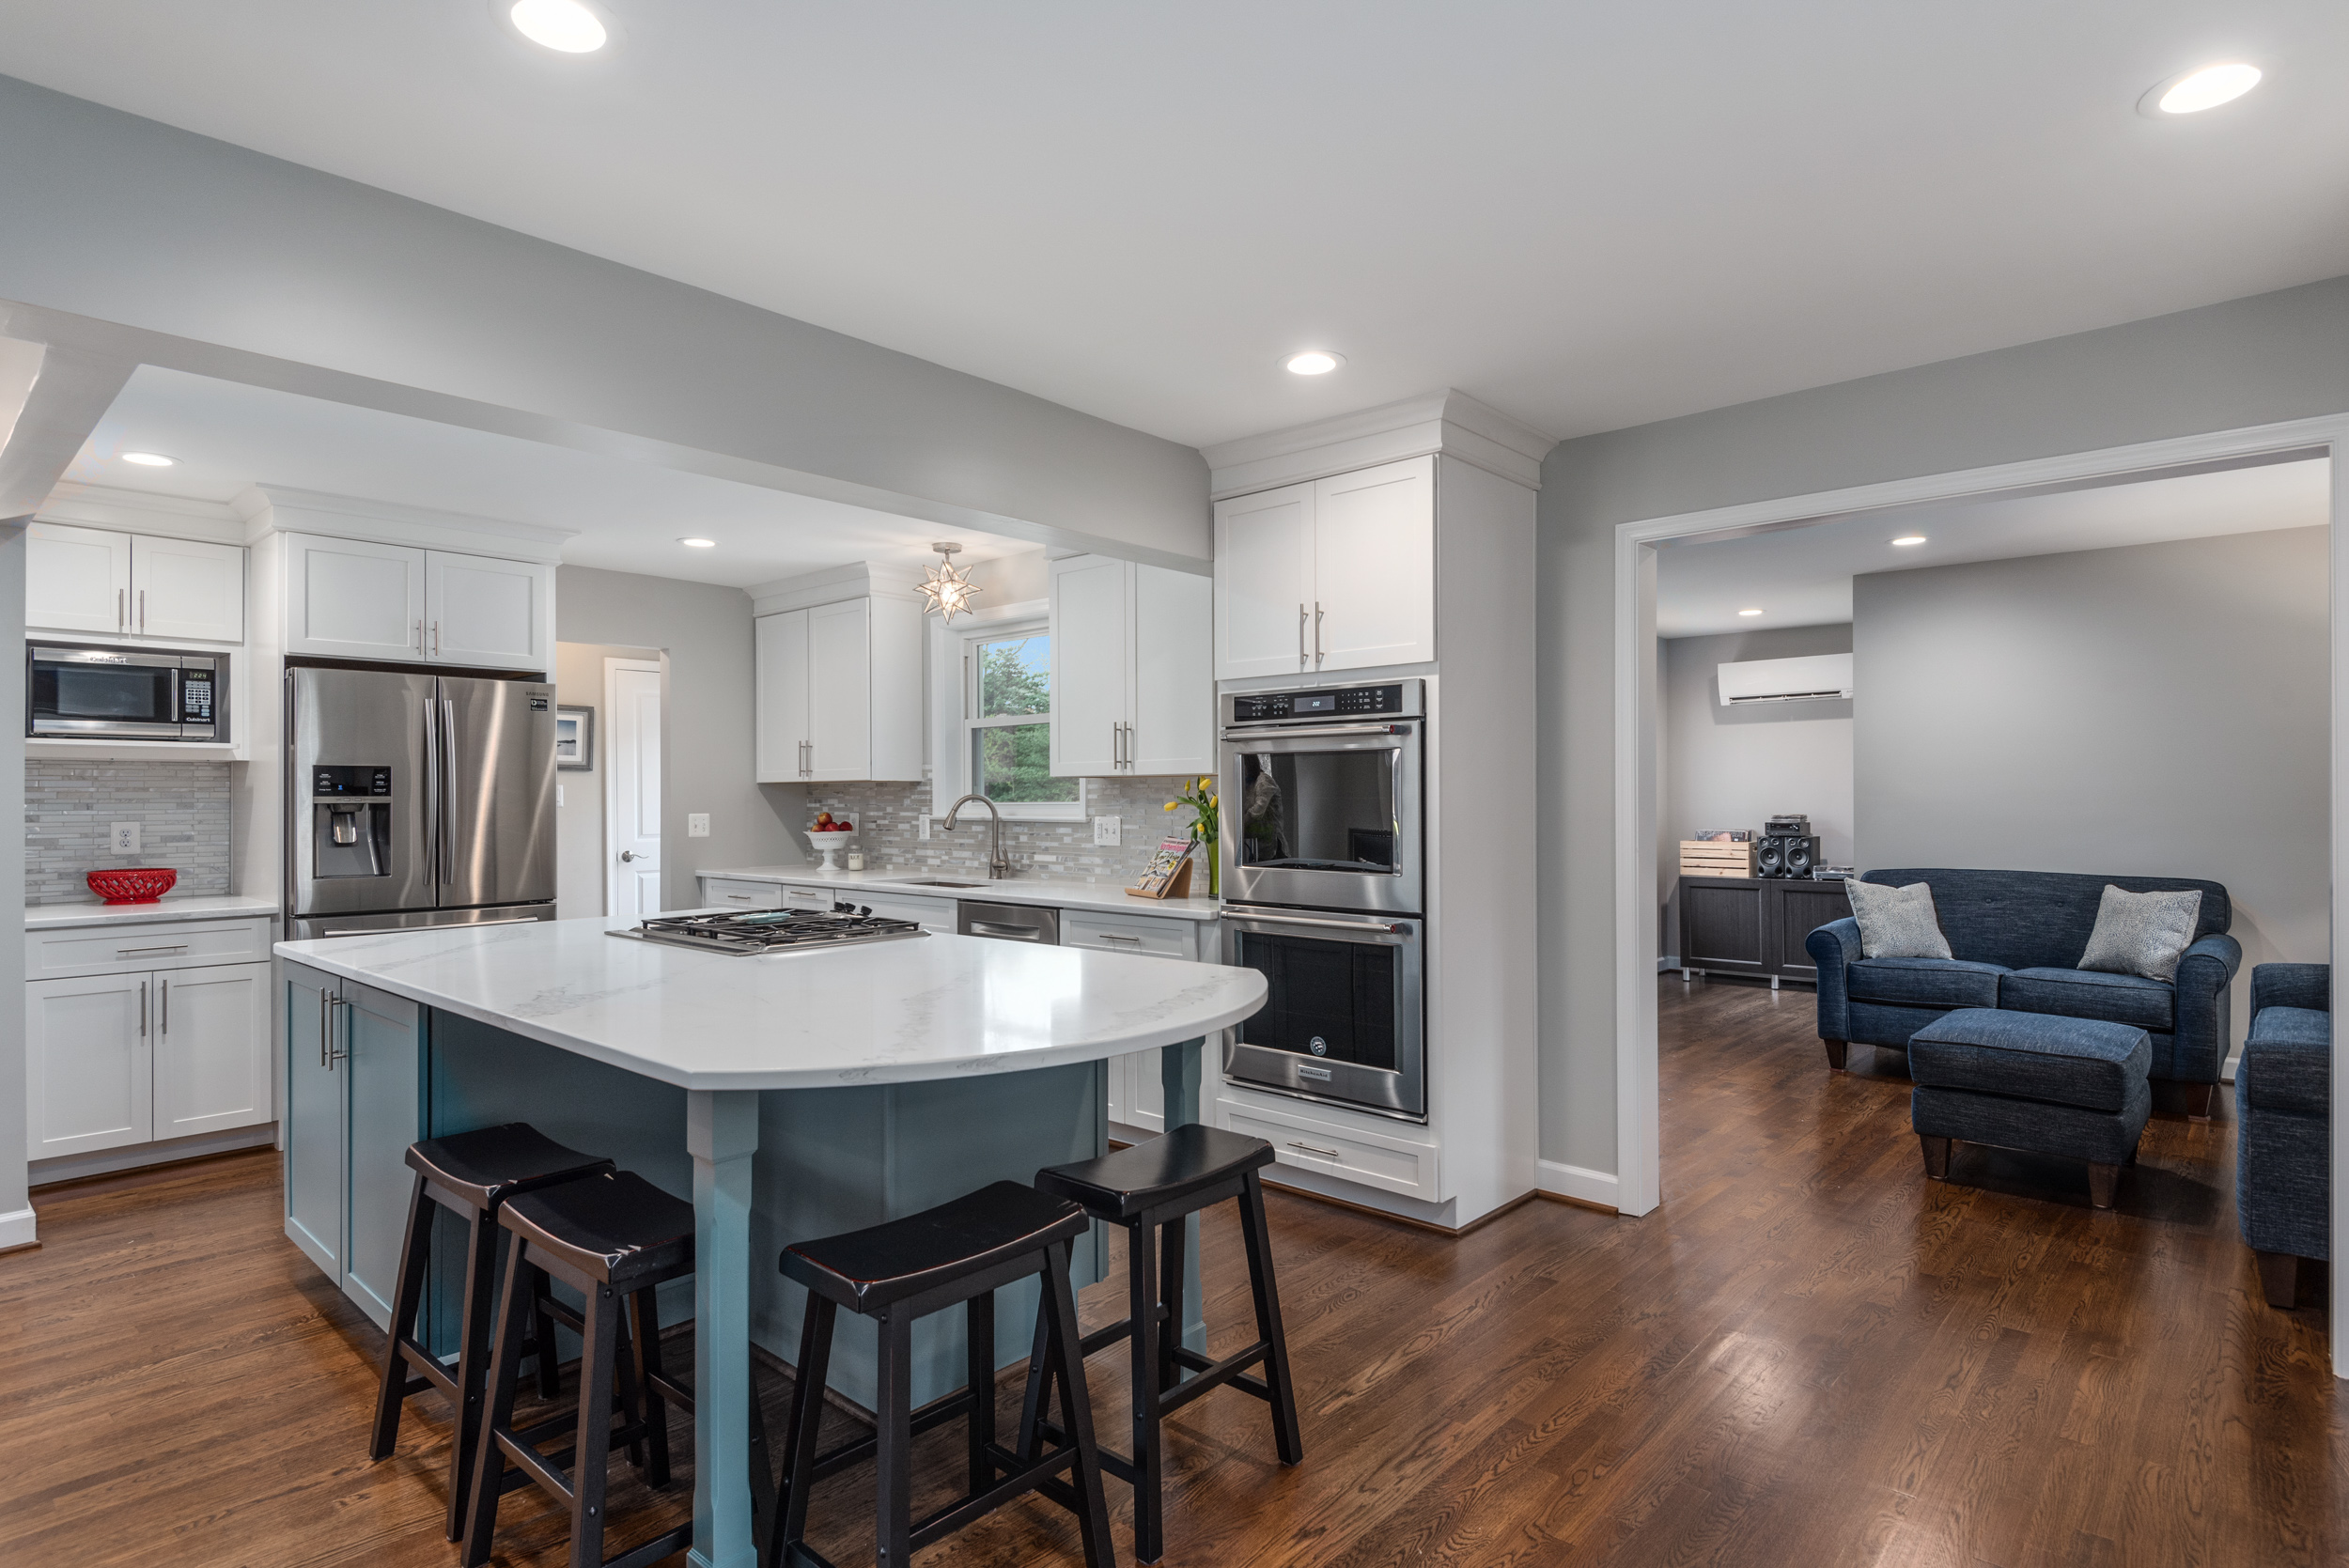 FairfaxCustomKitchenAddition9